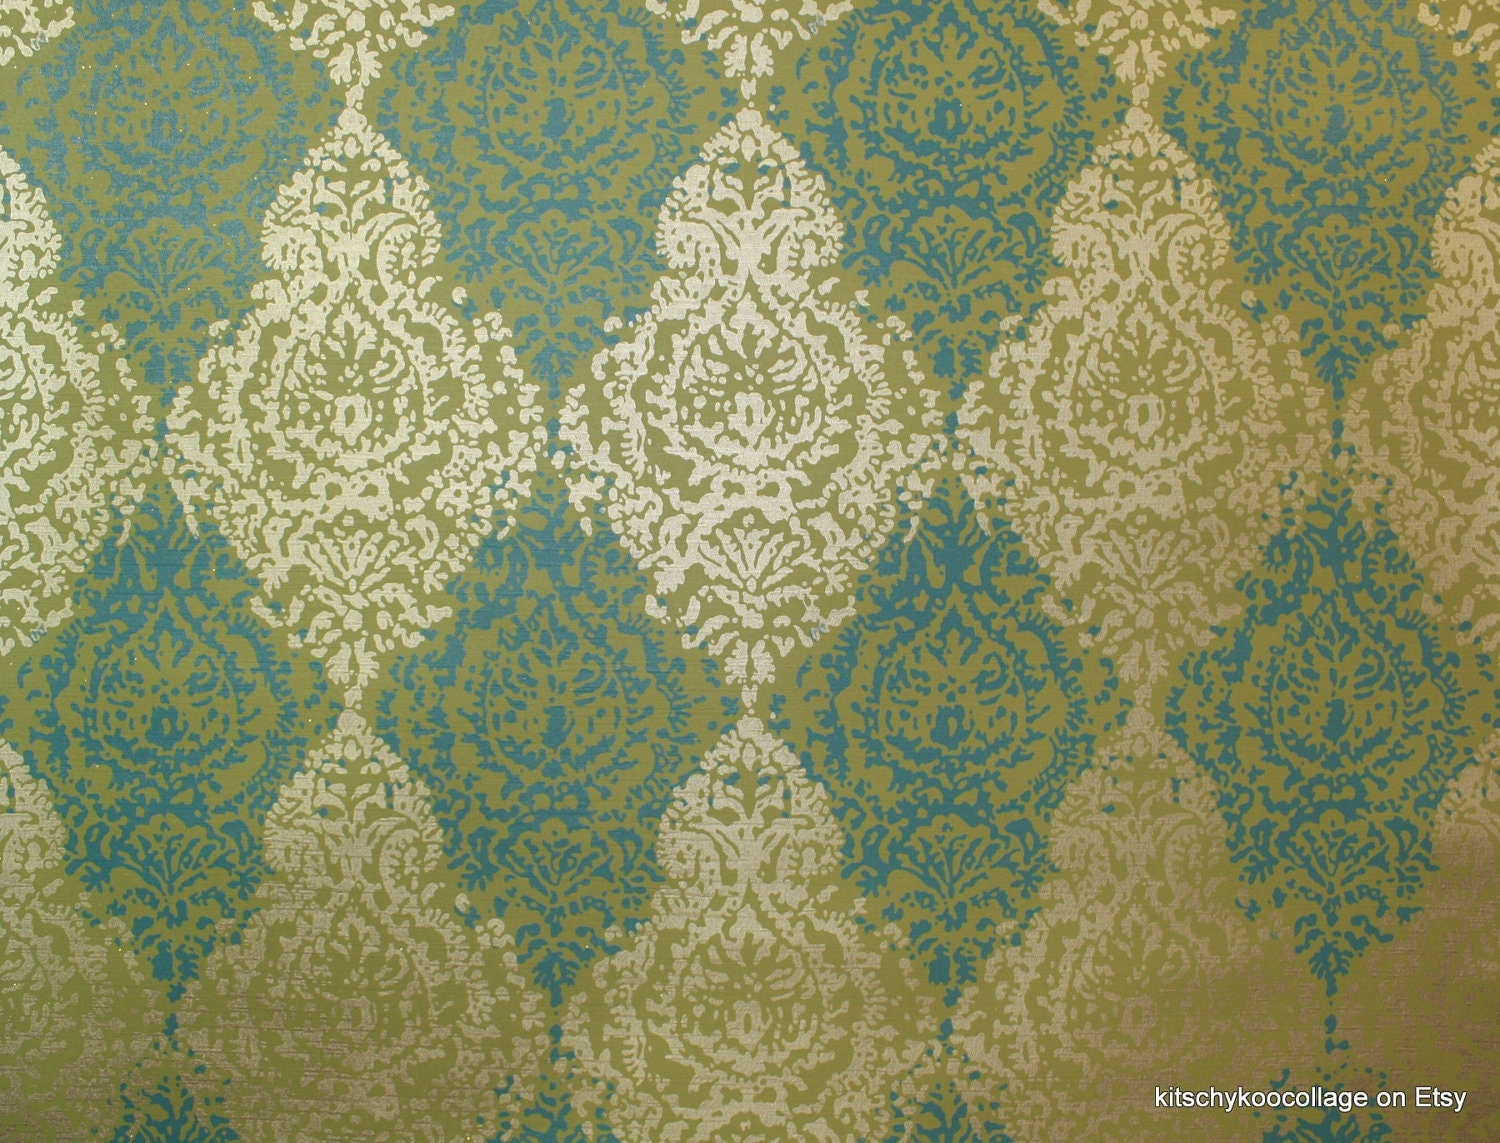 Classic Vintage Wallpaper: 1970's Vintage Wallpaper Retro Metallic Gold And Blue